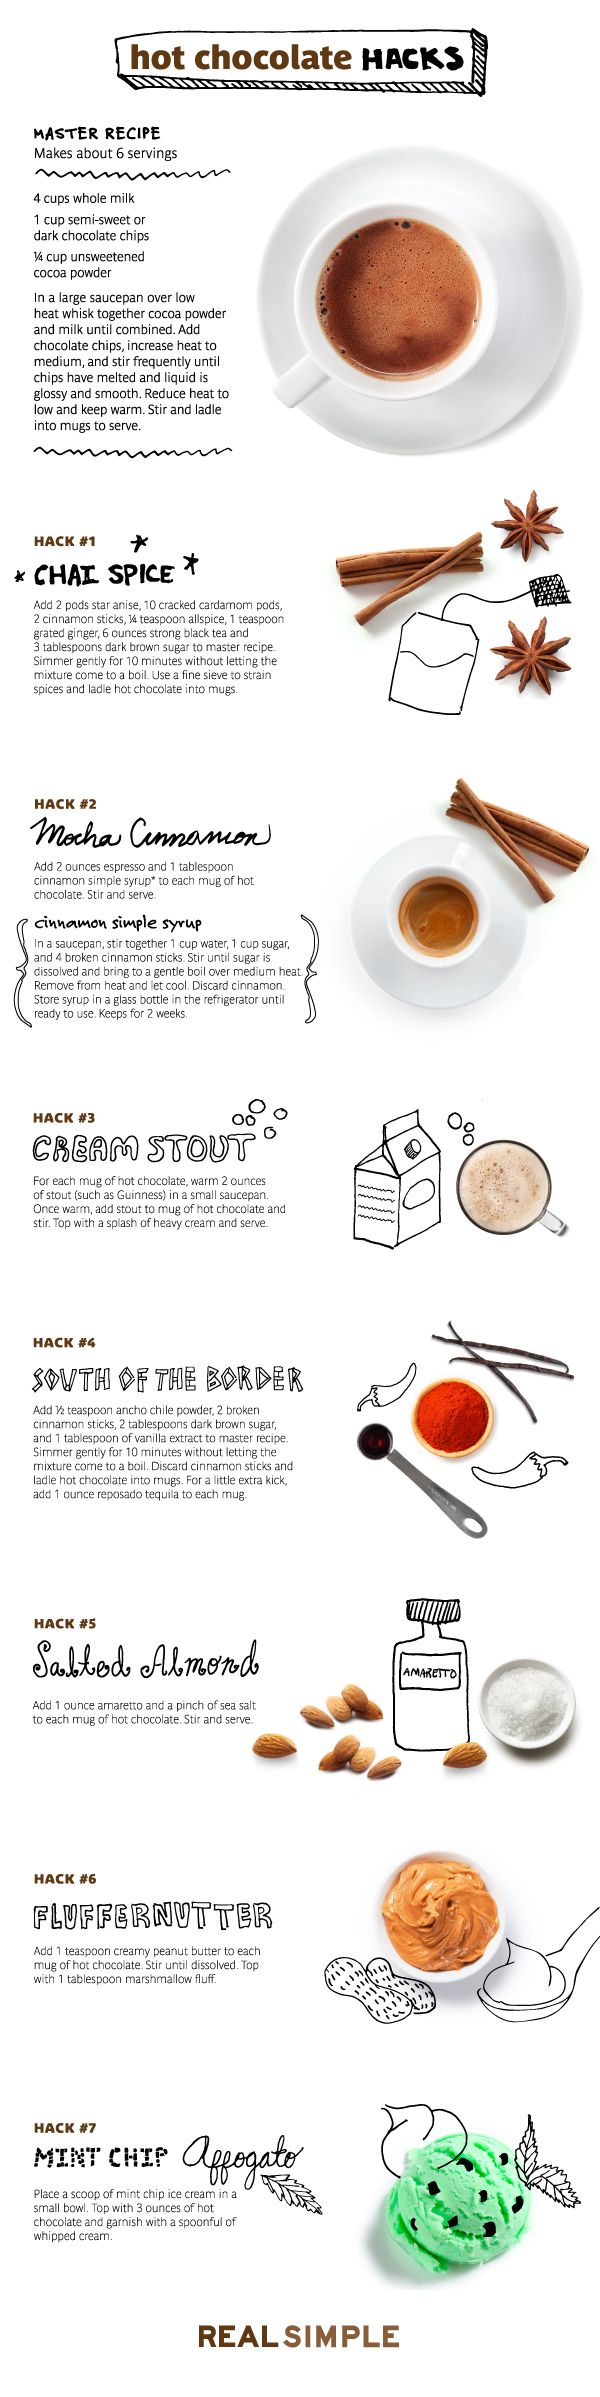 hot chocolate recipes.